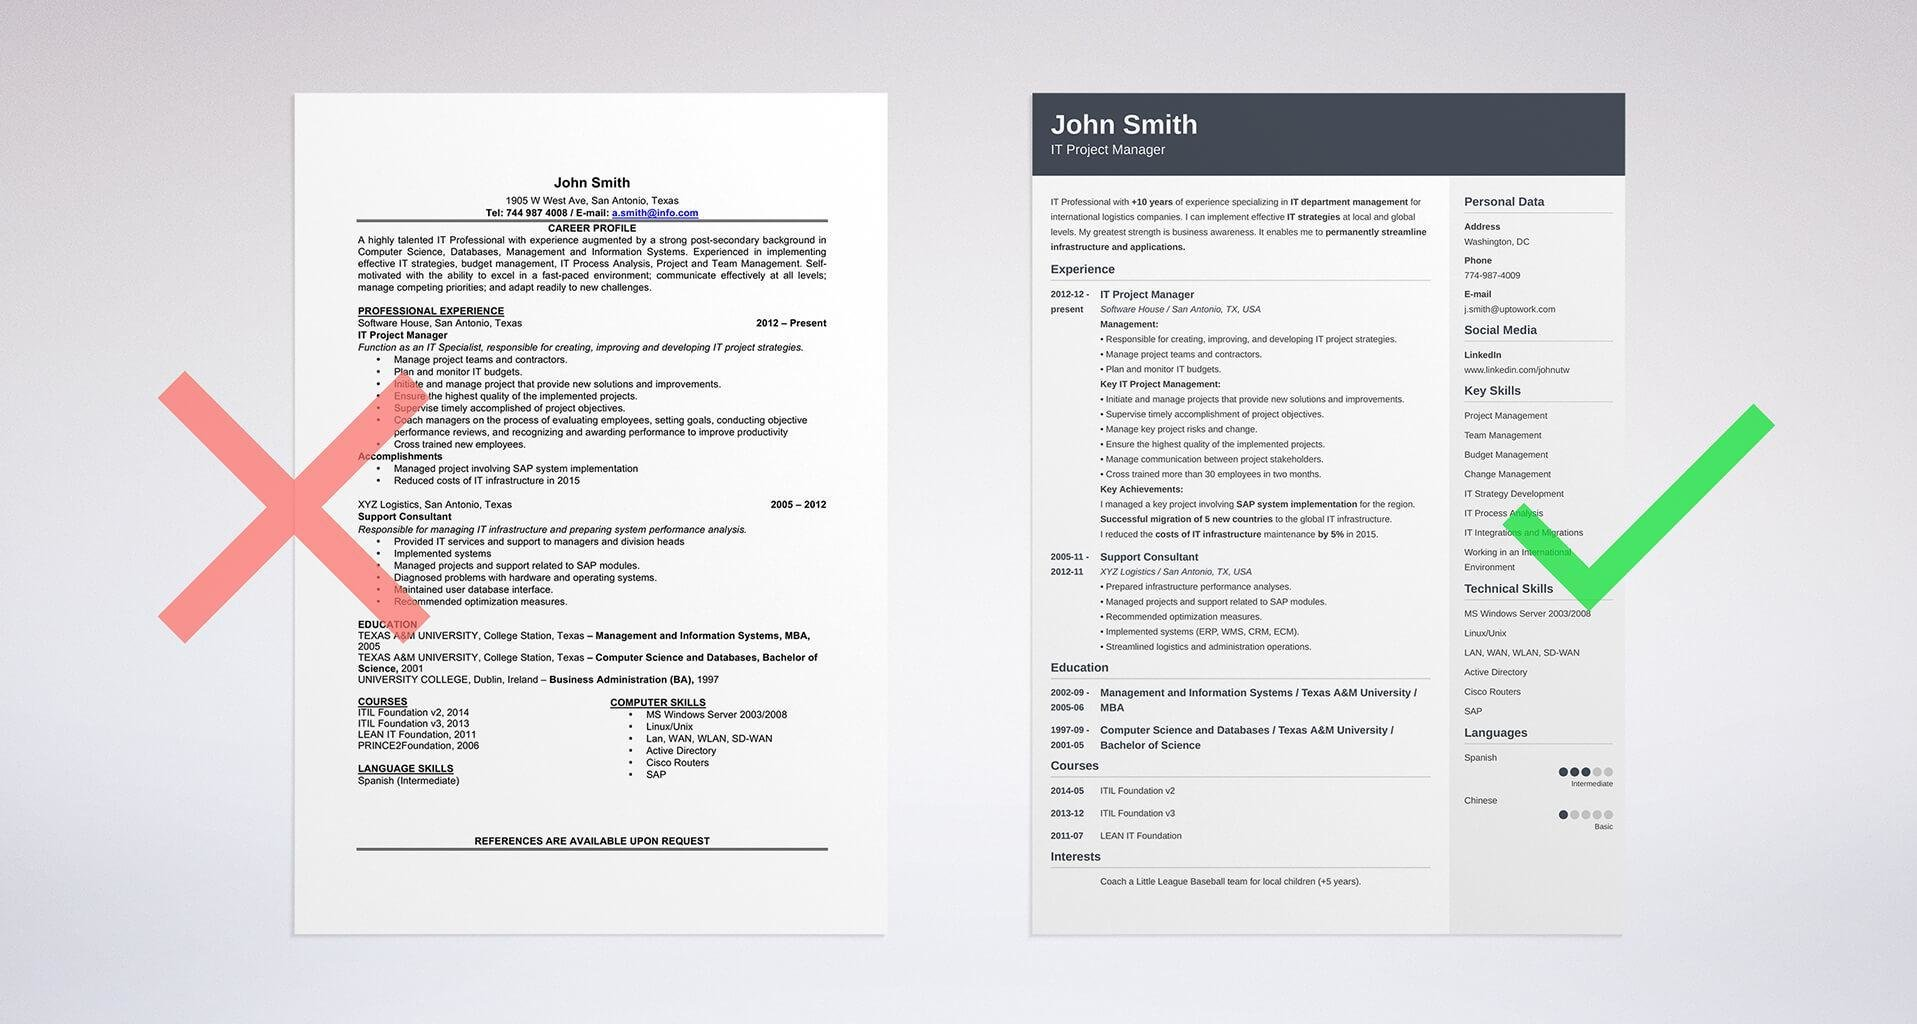 best resume format professional samples job examples formats template and cover letter Resume Job Resume Examples 2020